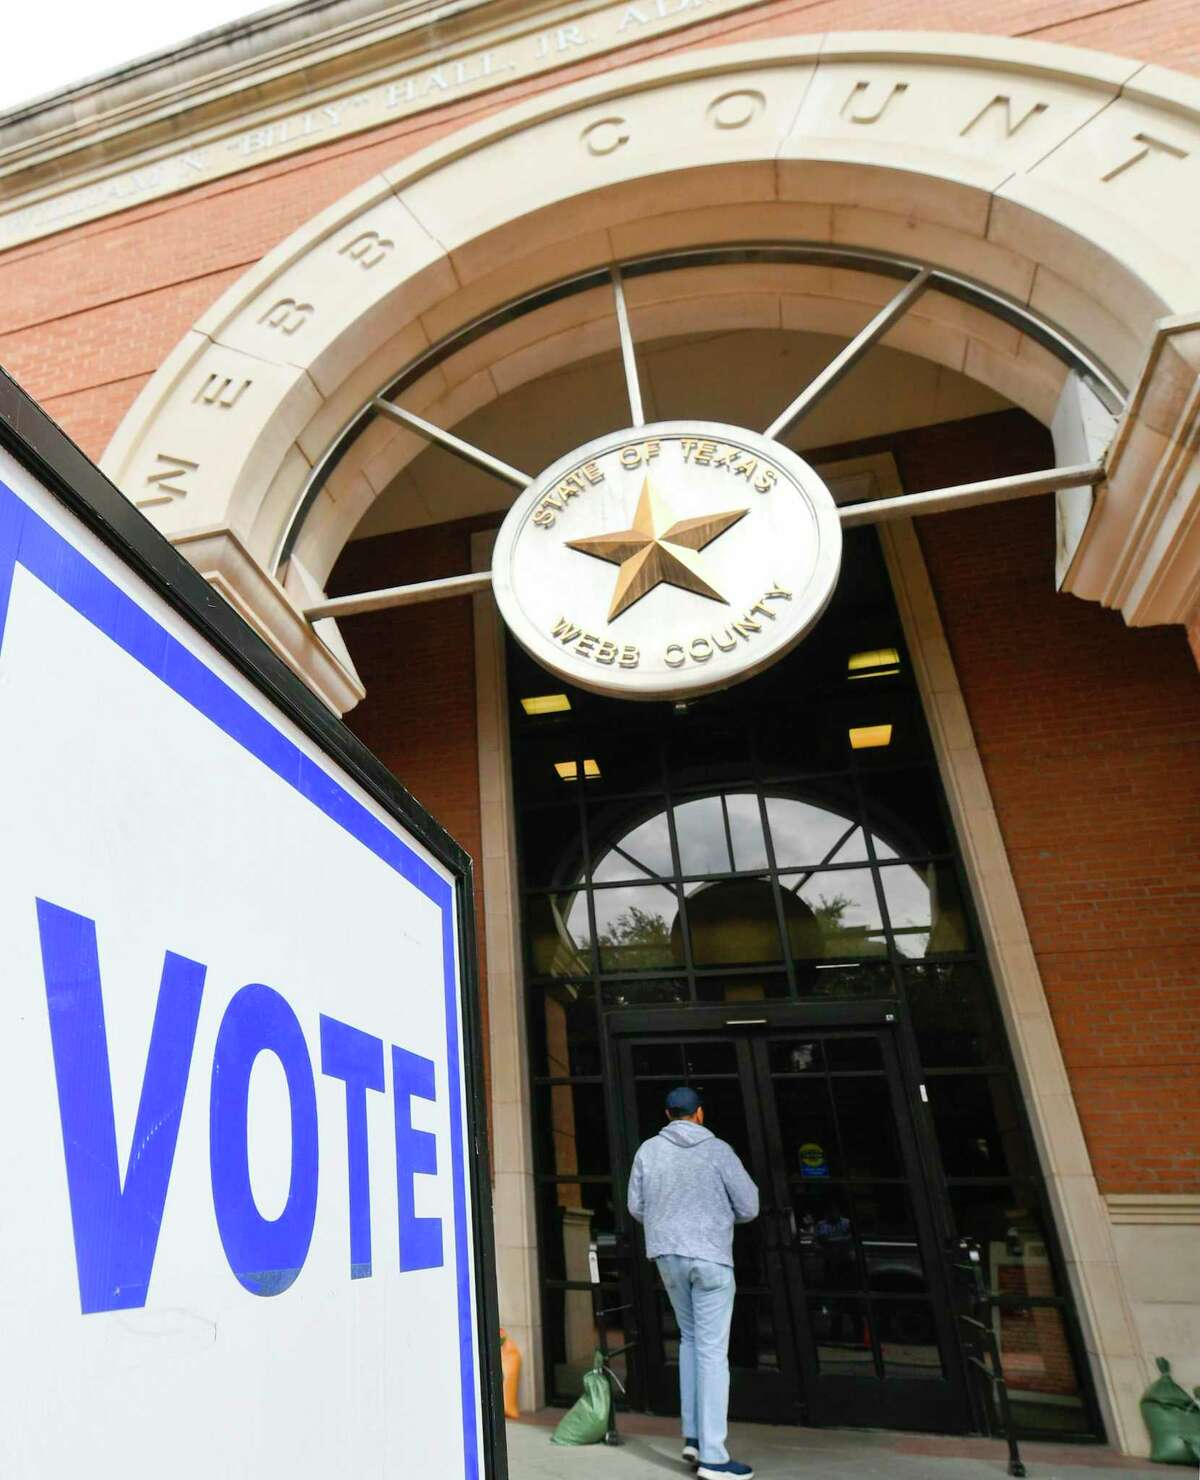 Laredoans enter the Webb County Billy Hall Jr. Administrative Building, the main early voting site, on Monday, Oct. 22, 2018. Early voting will continue through November 2, 2018.